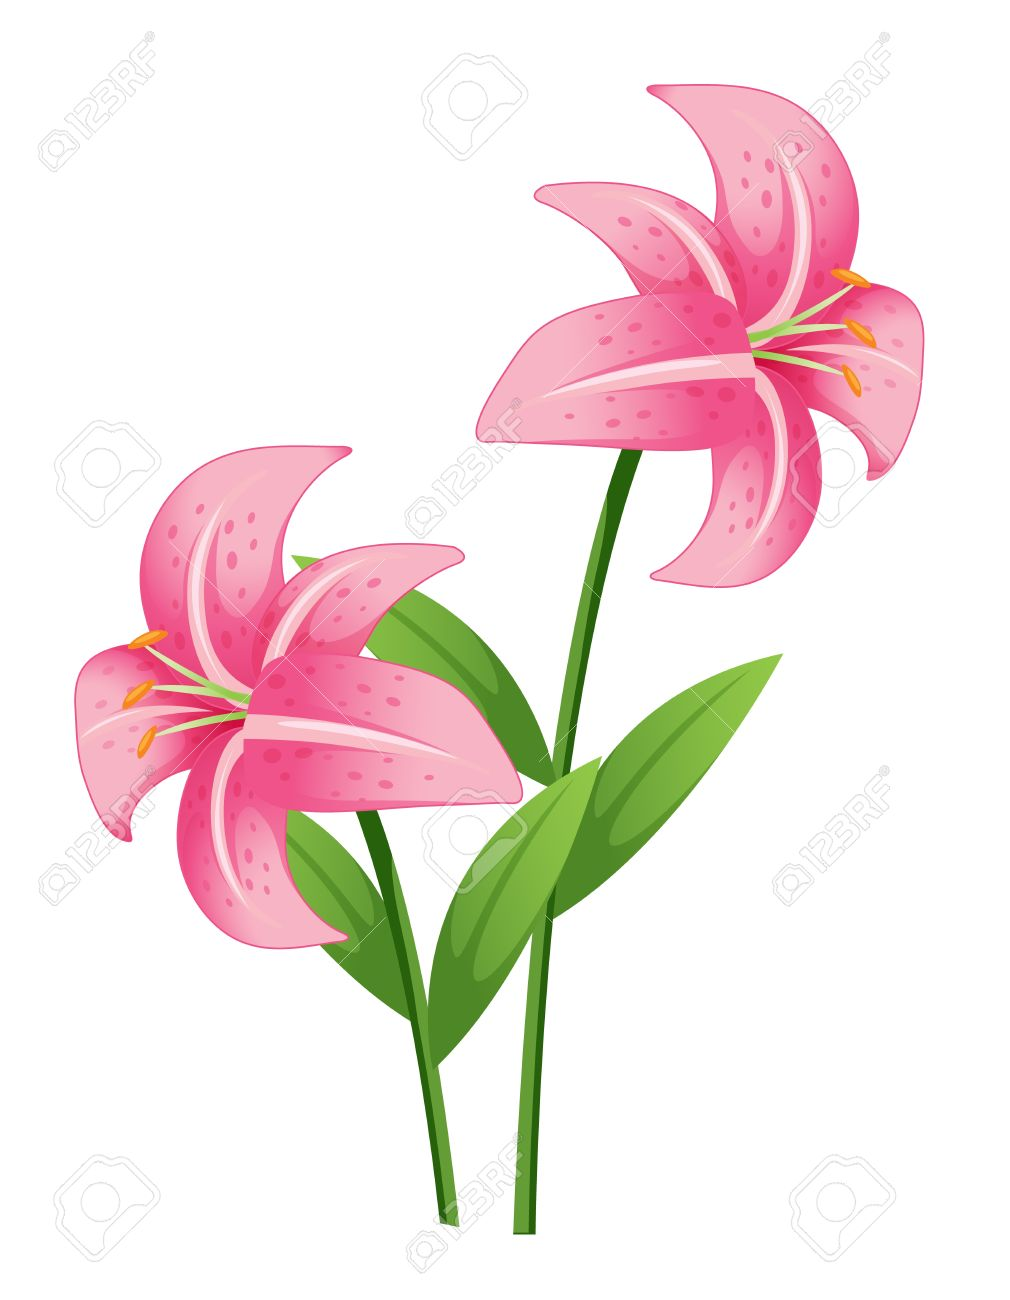 Stargazer lily cliparts free download jpg.